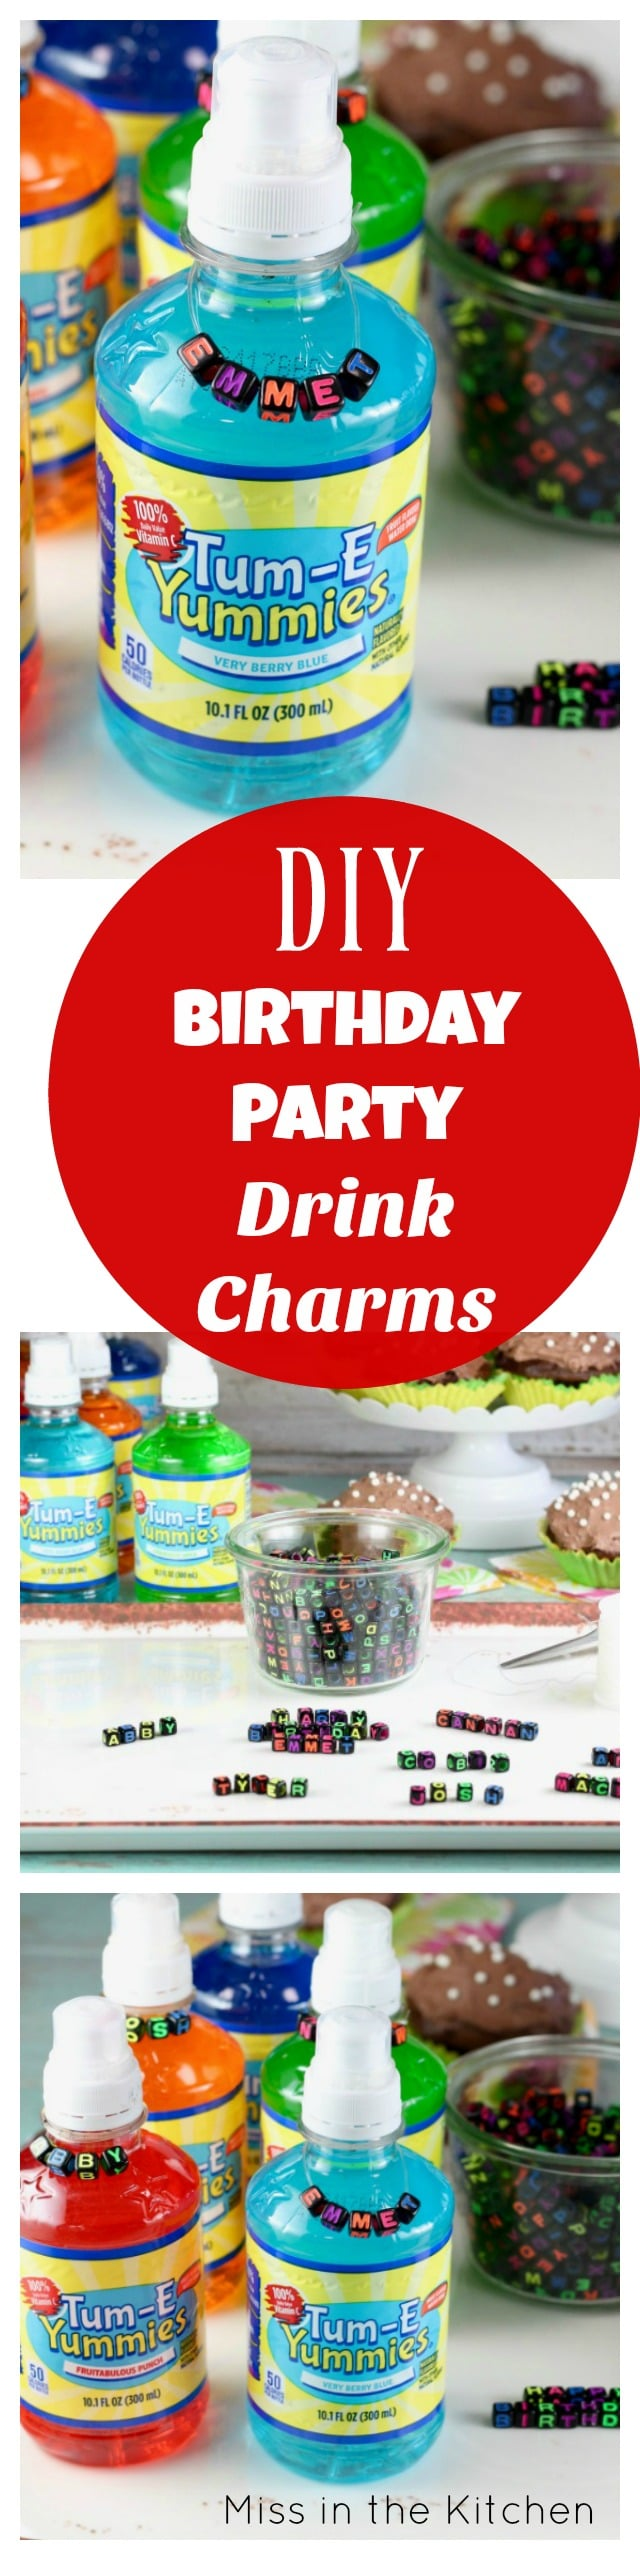 DIY Birthday Party Drink Charms Tutorial from MissintheKitchen.com